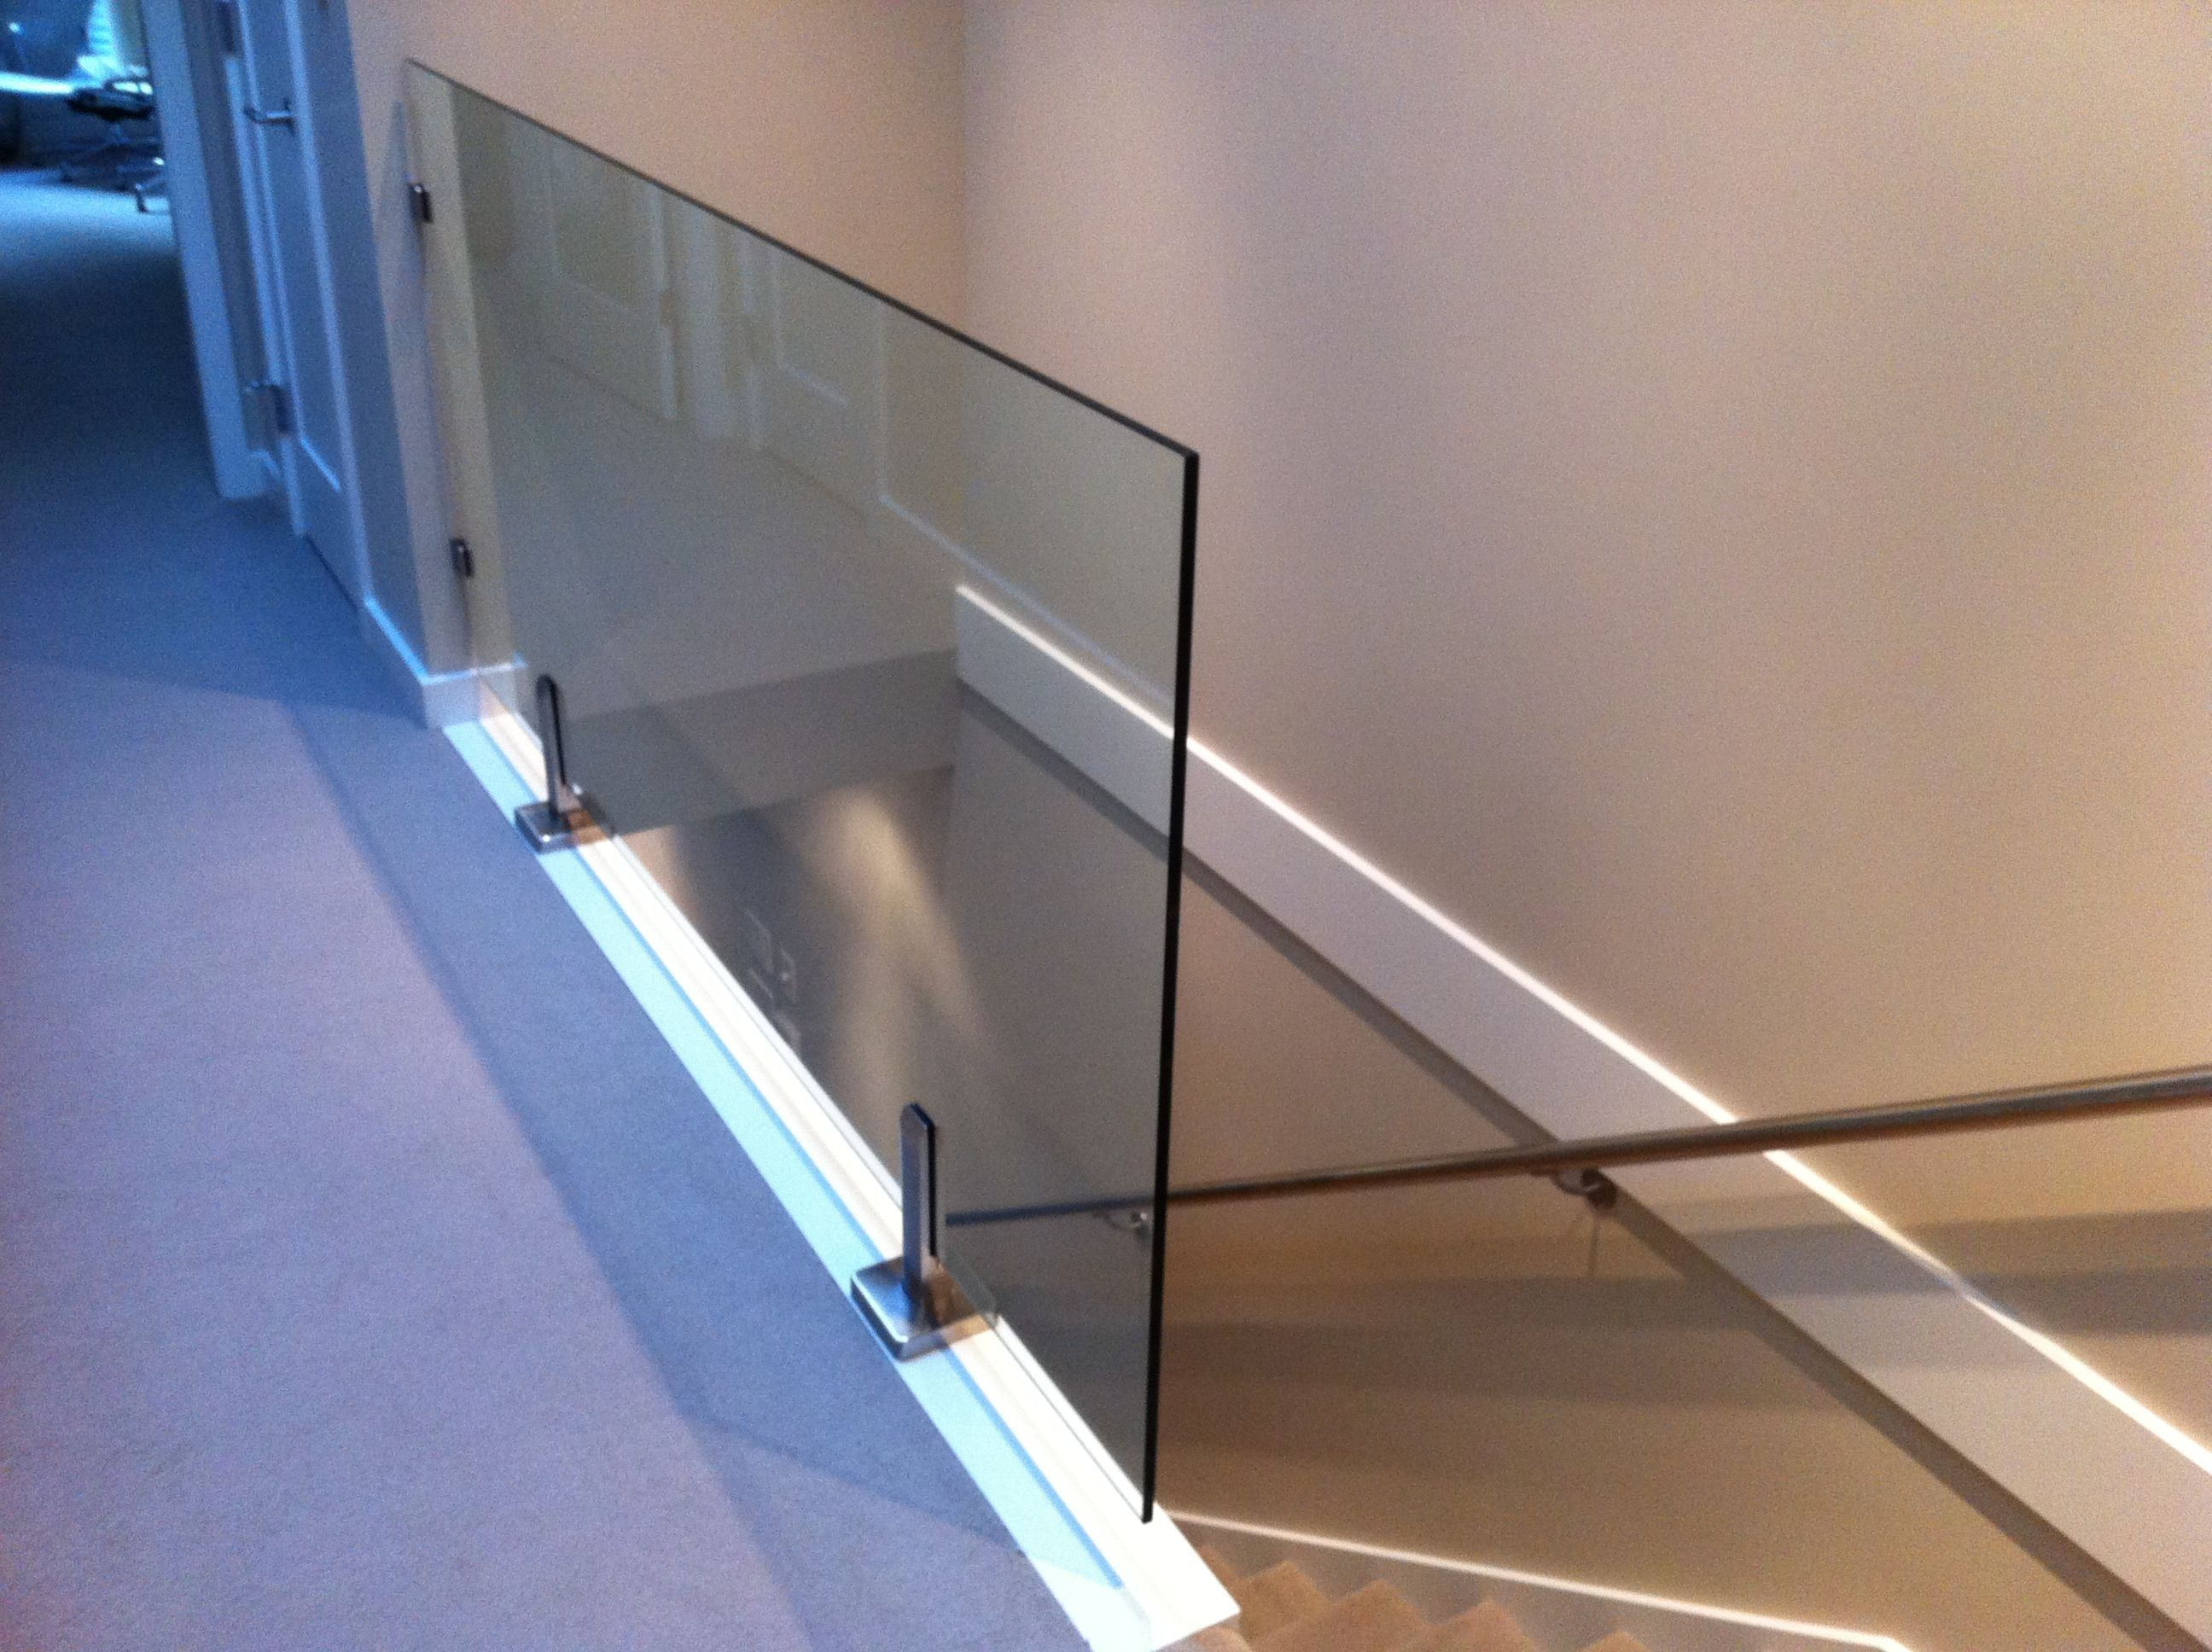 Glass Railings Super Interior Railing With All Clamps Home